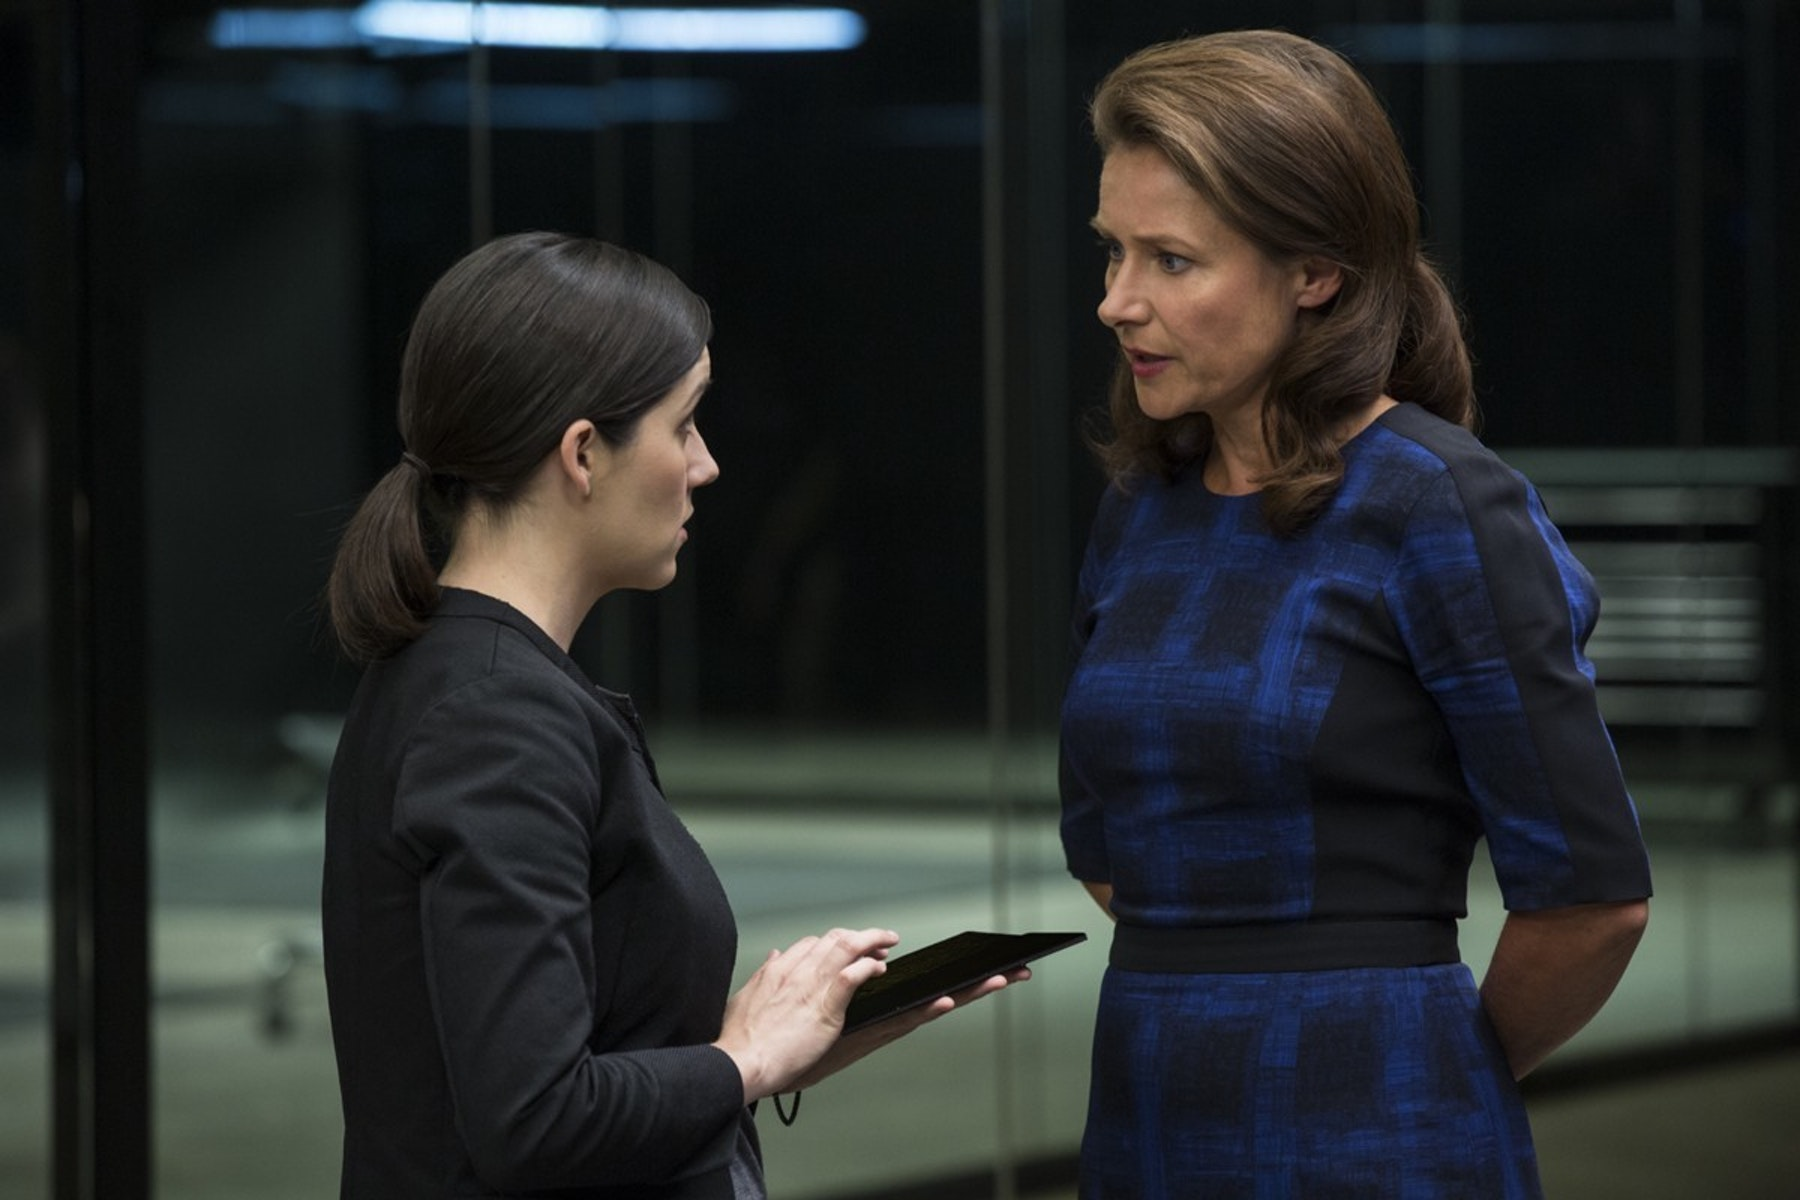 Shannon Woodward as Elsie and Sidse Babett Knudsen as Theresa Cullen, who looks like she means business.